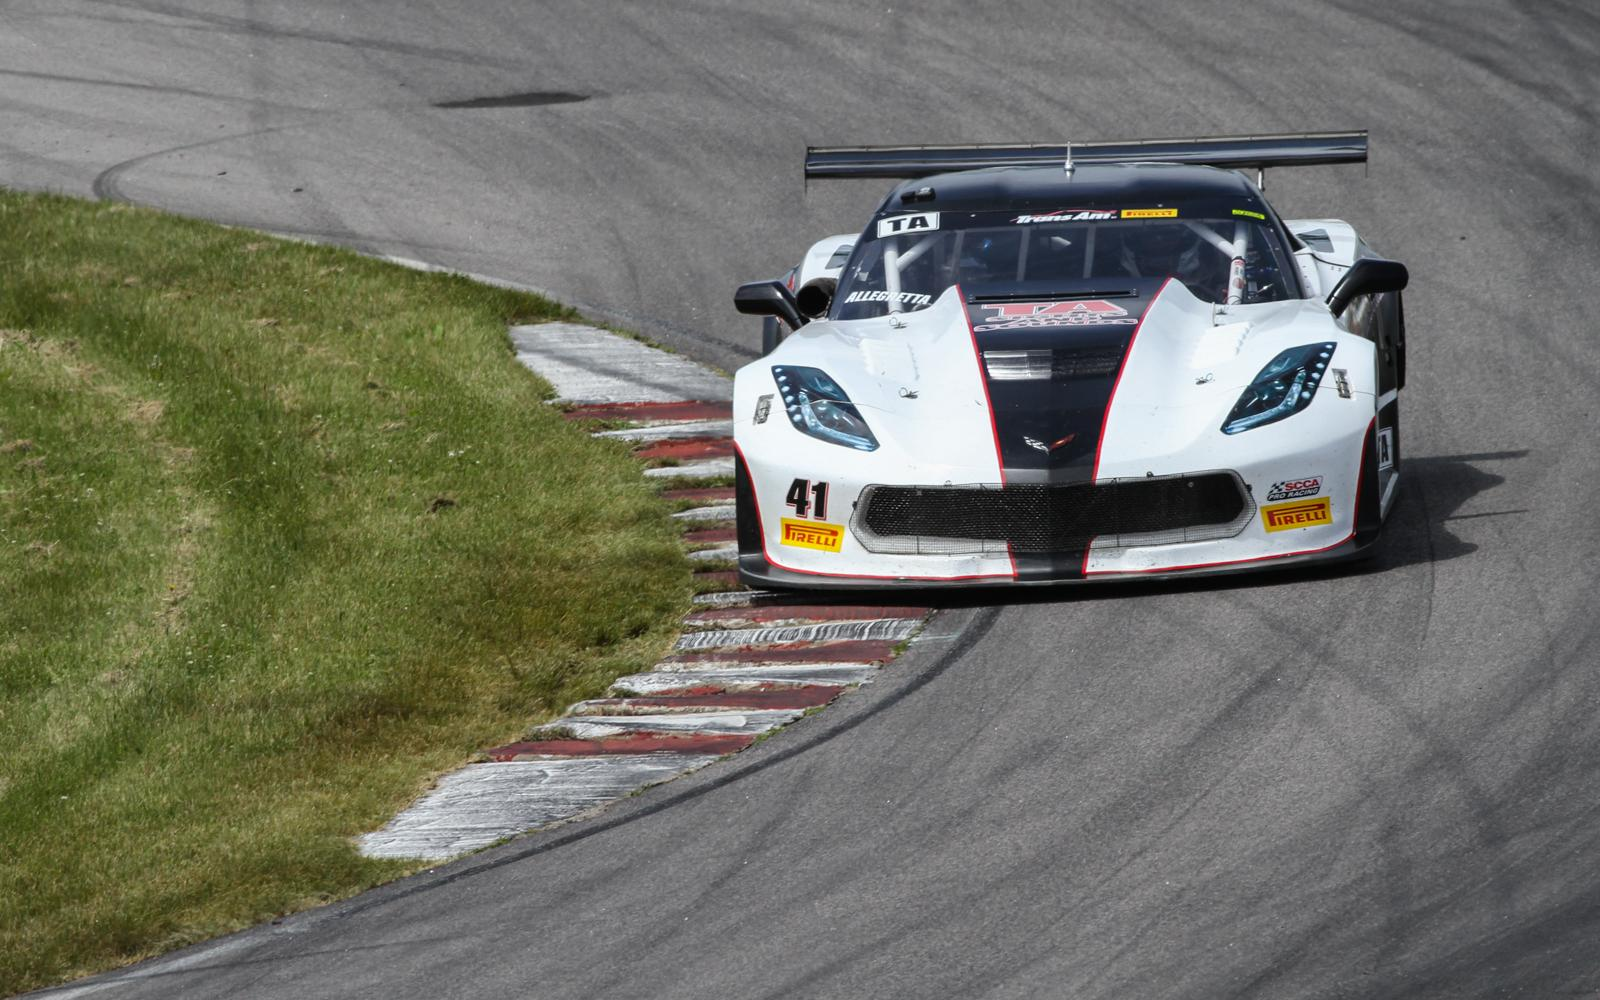 Allegretta and Buffomante Set Fast Laps in Second Practice at Brainerd